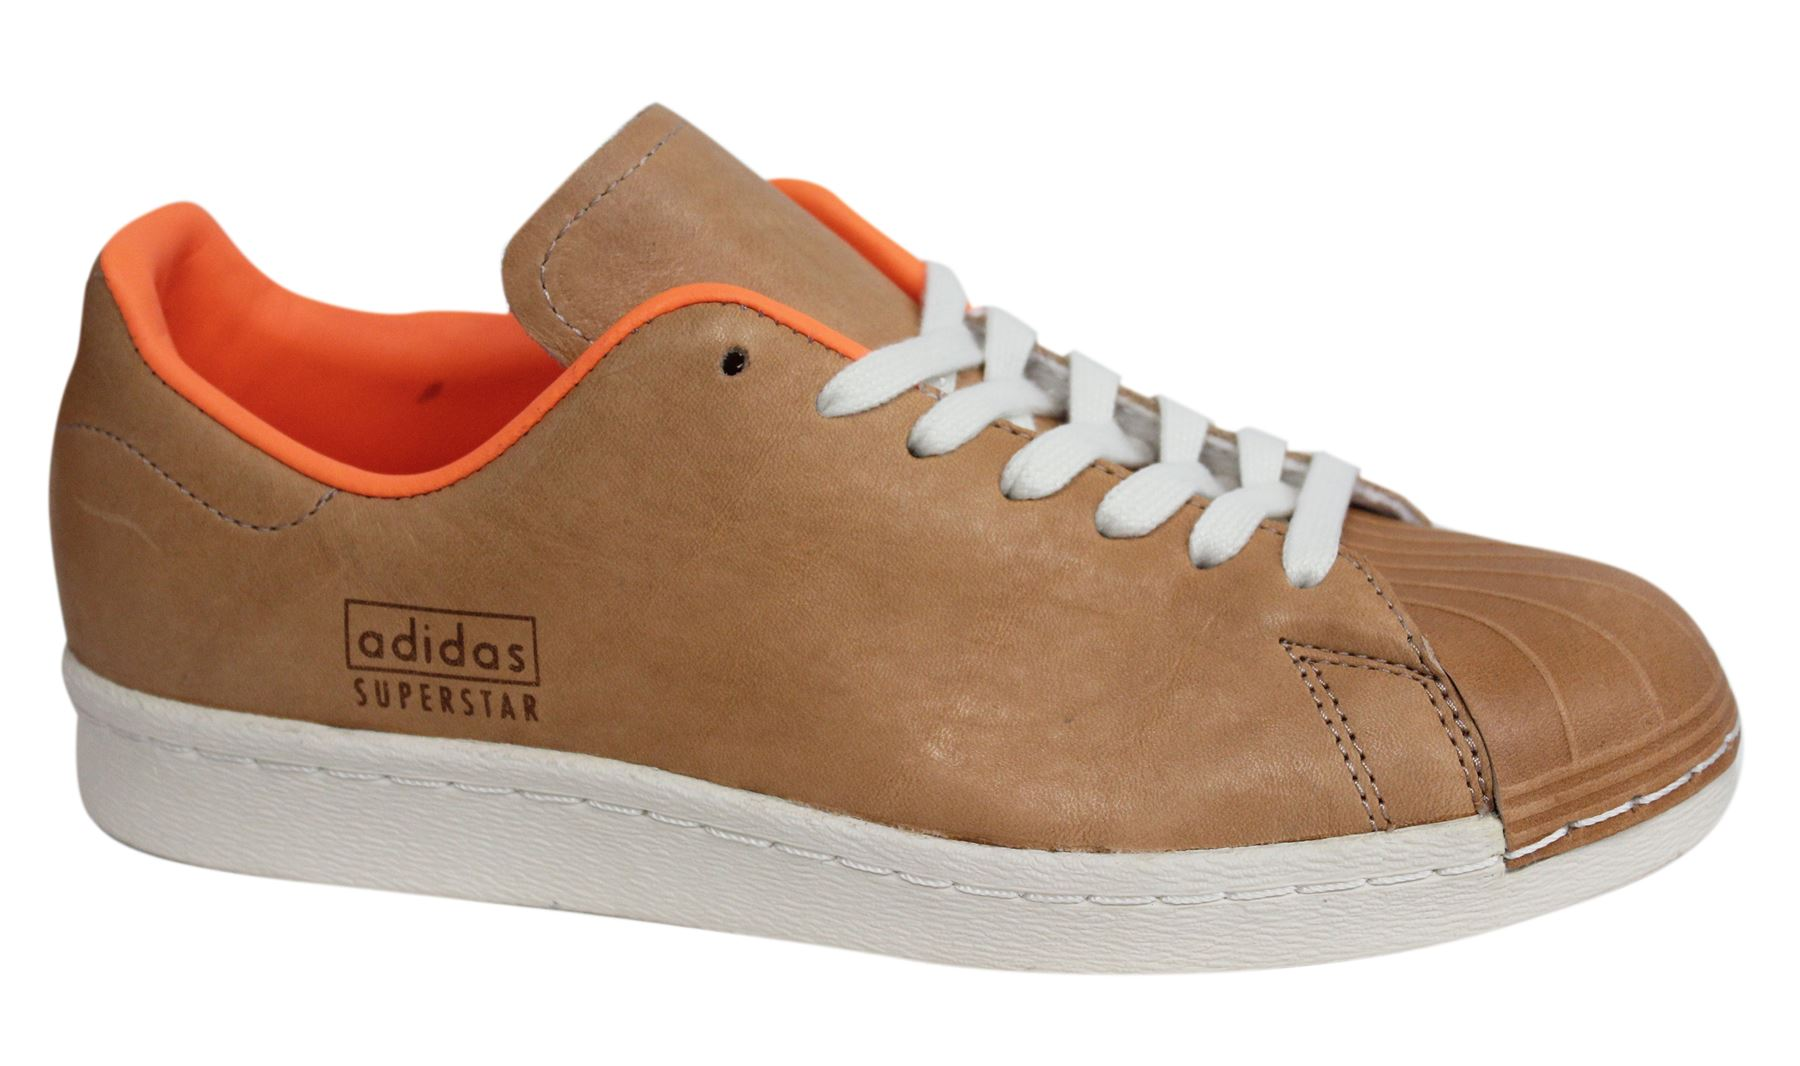 08053c1fdad1 Adidas Originals Superstar 80s Light Brown Leather Mens Trainers BA7767 U20